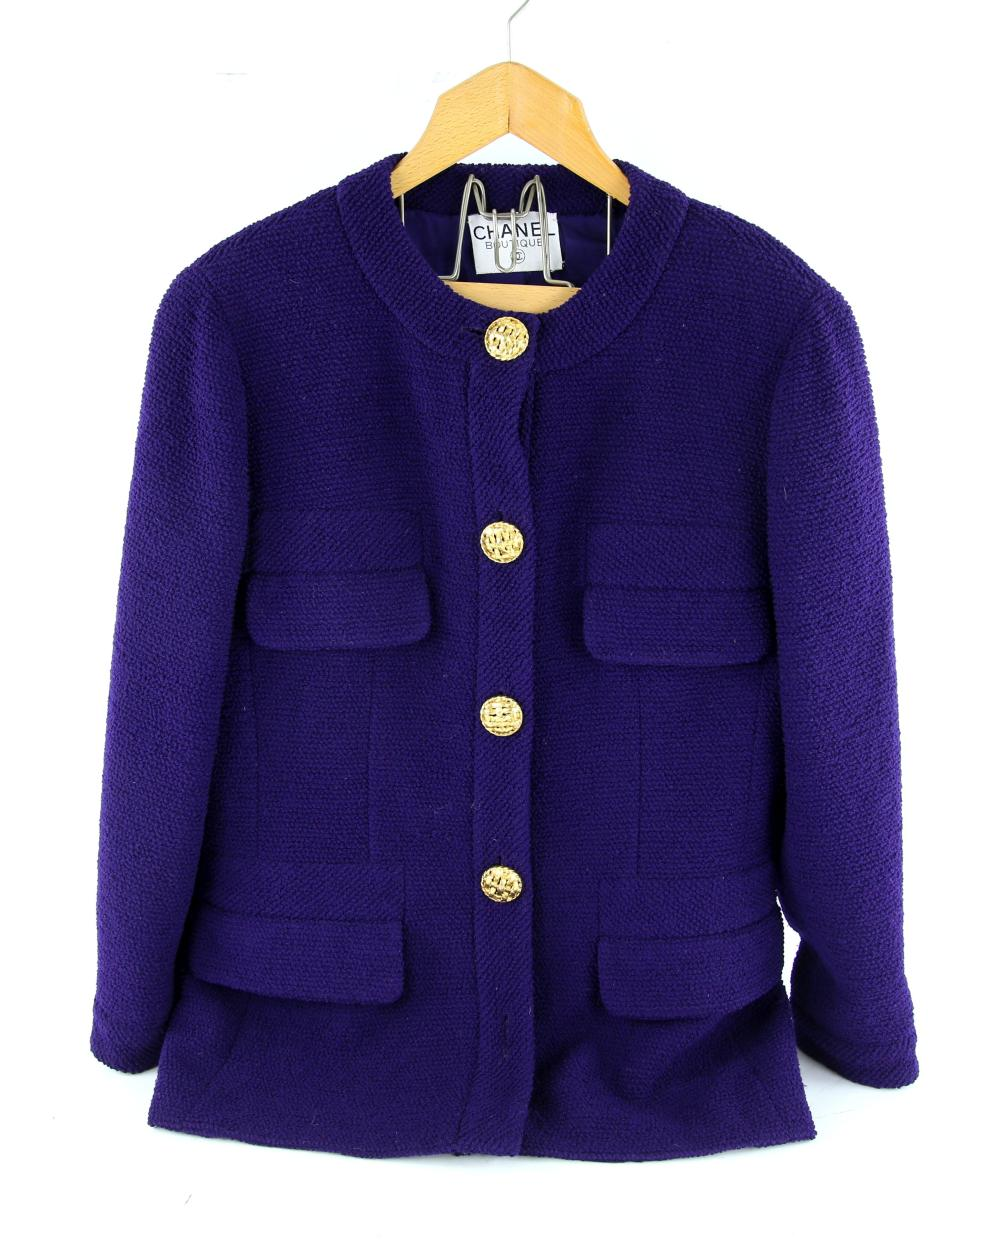 Chanel vintage jacket in purple boucle fabric with